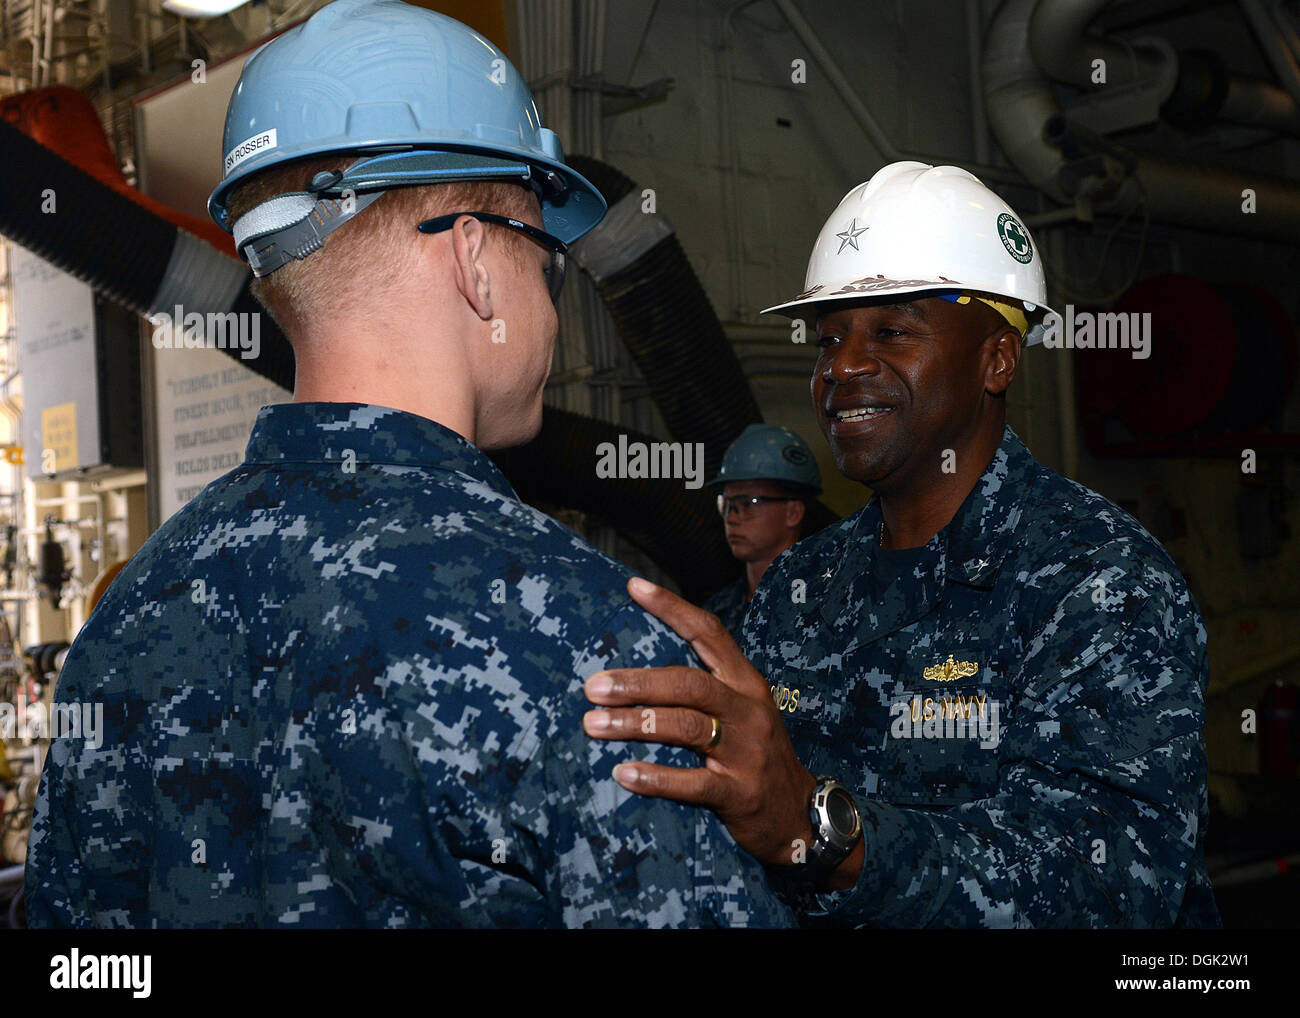 Commander of Expeditionary Strike Group (ESG) 3 Rear Adm. Frank Pond thanks Seaman David Rosser for his service Stock Photo